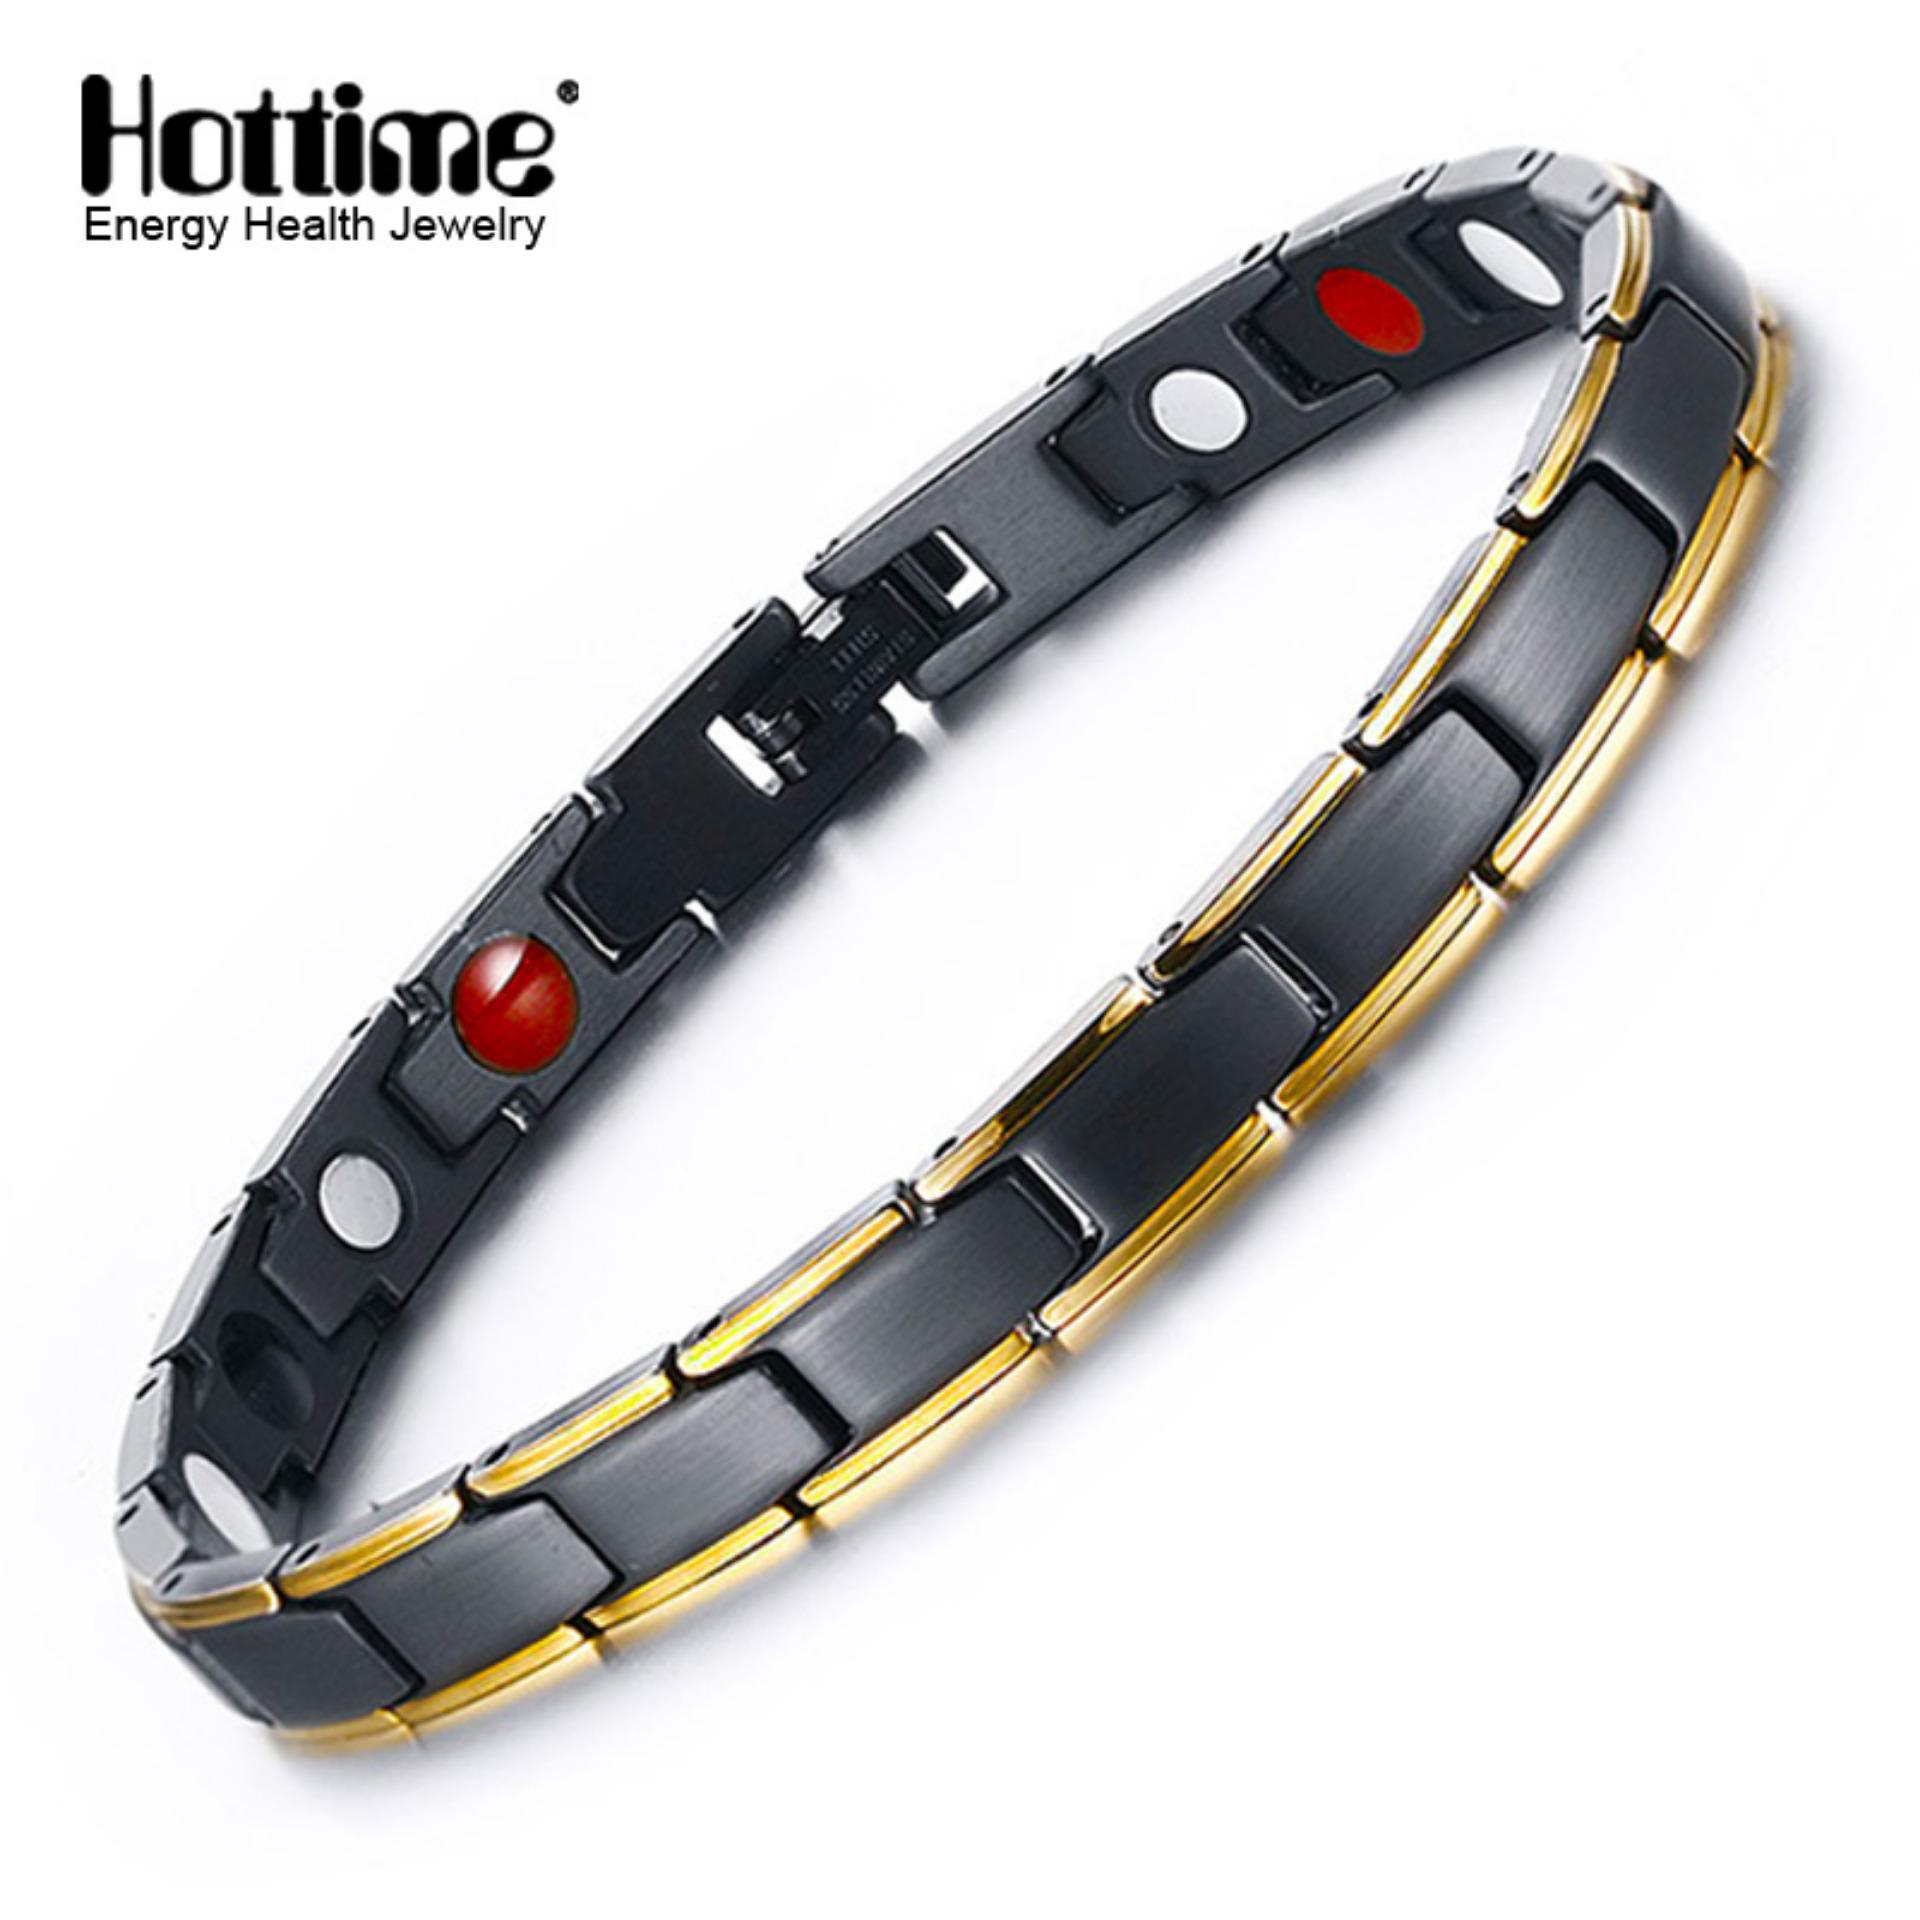 Toko Hottime 4 In 1 Magnetic New Fashion Lovers Jewelry Steel Black Gold Titanium Bracelet For Women And Men Never Fade Top Quality 10089 Intl Oem Online